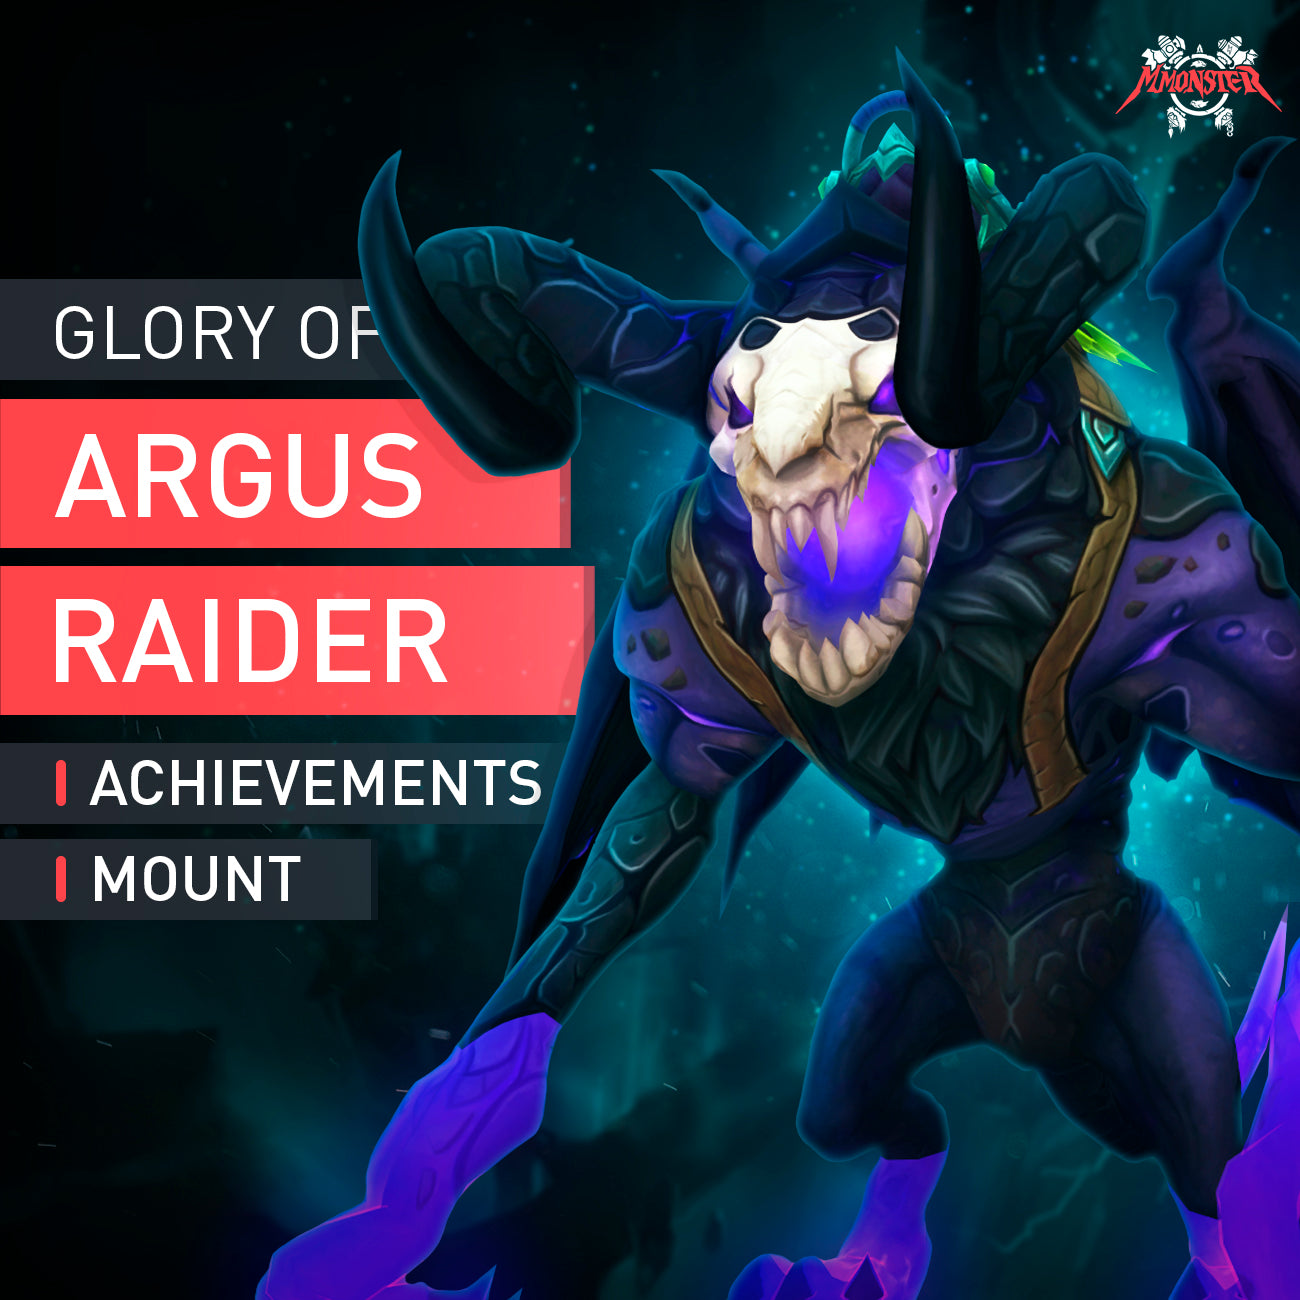 Glory of the Argus Raider